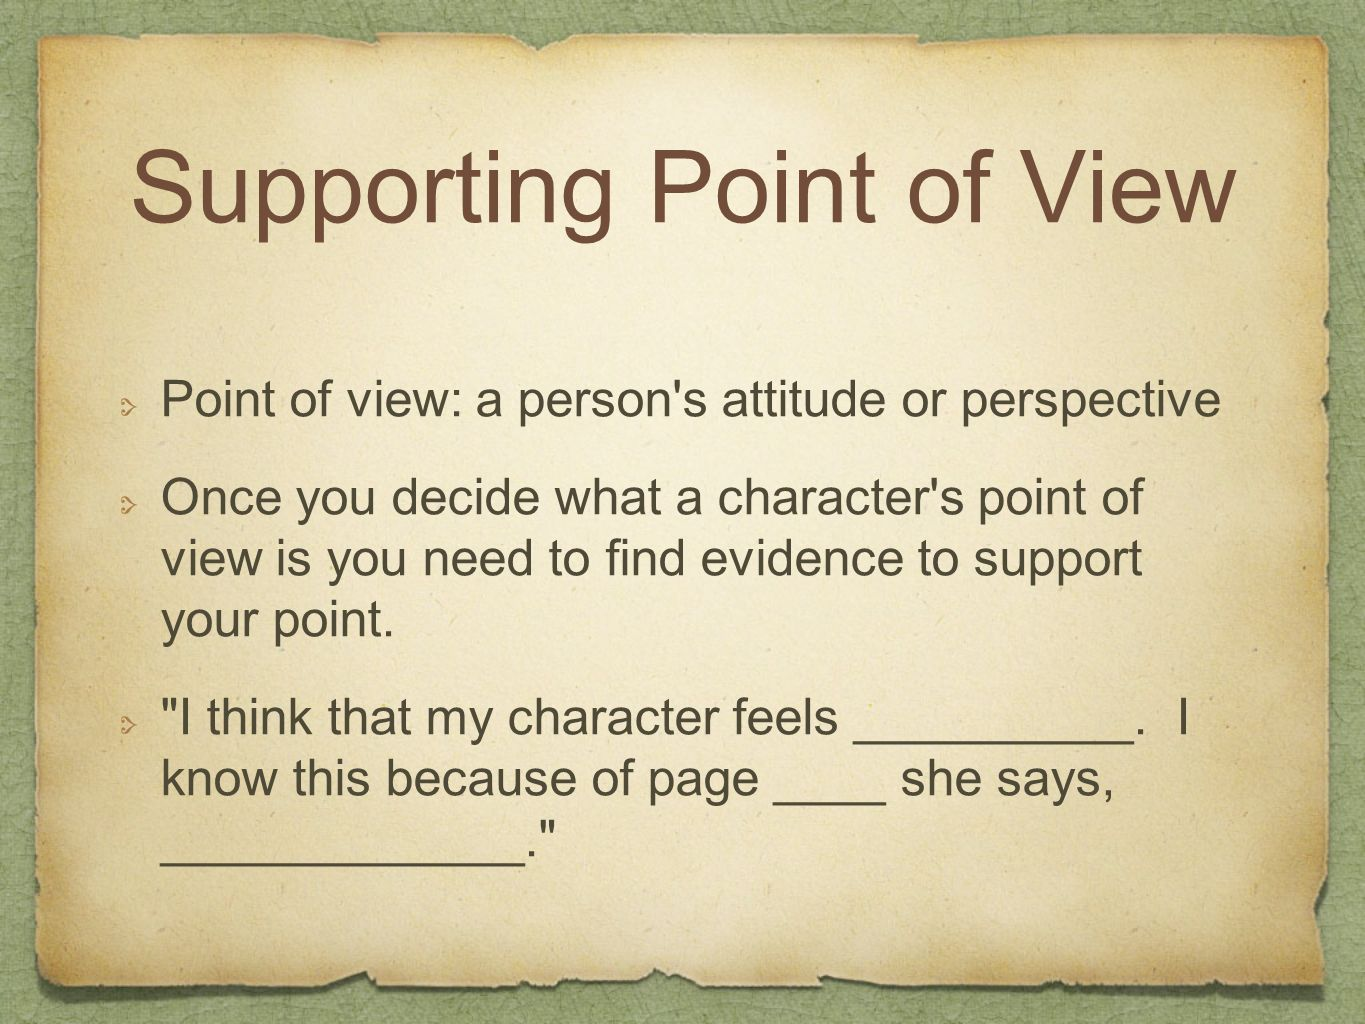 Supporting Point of View